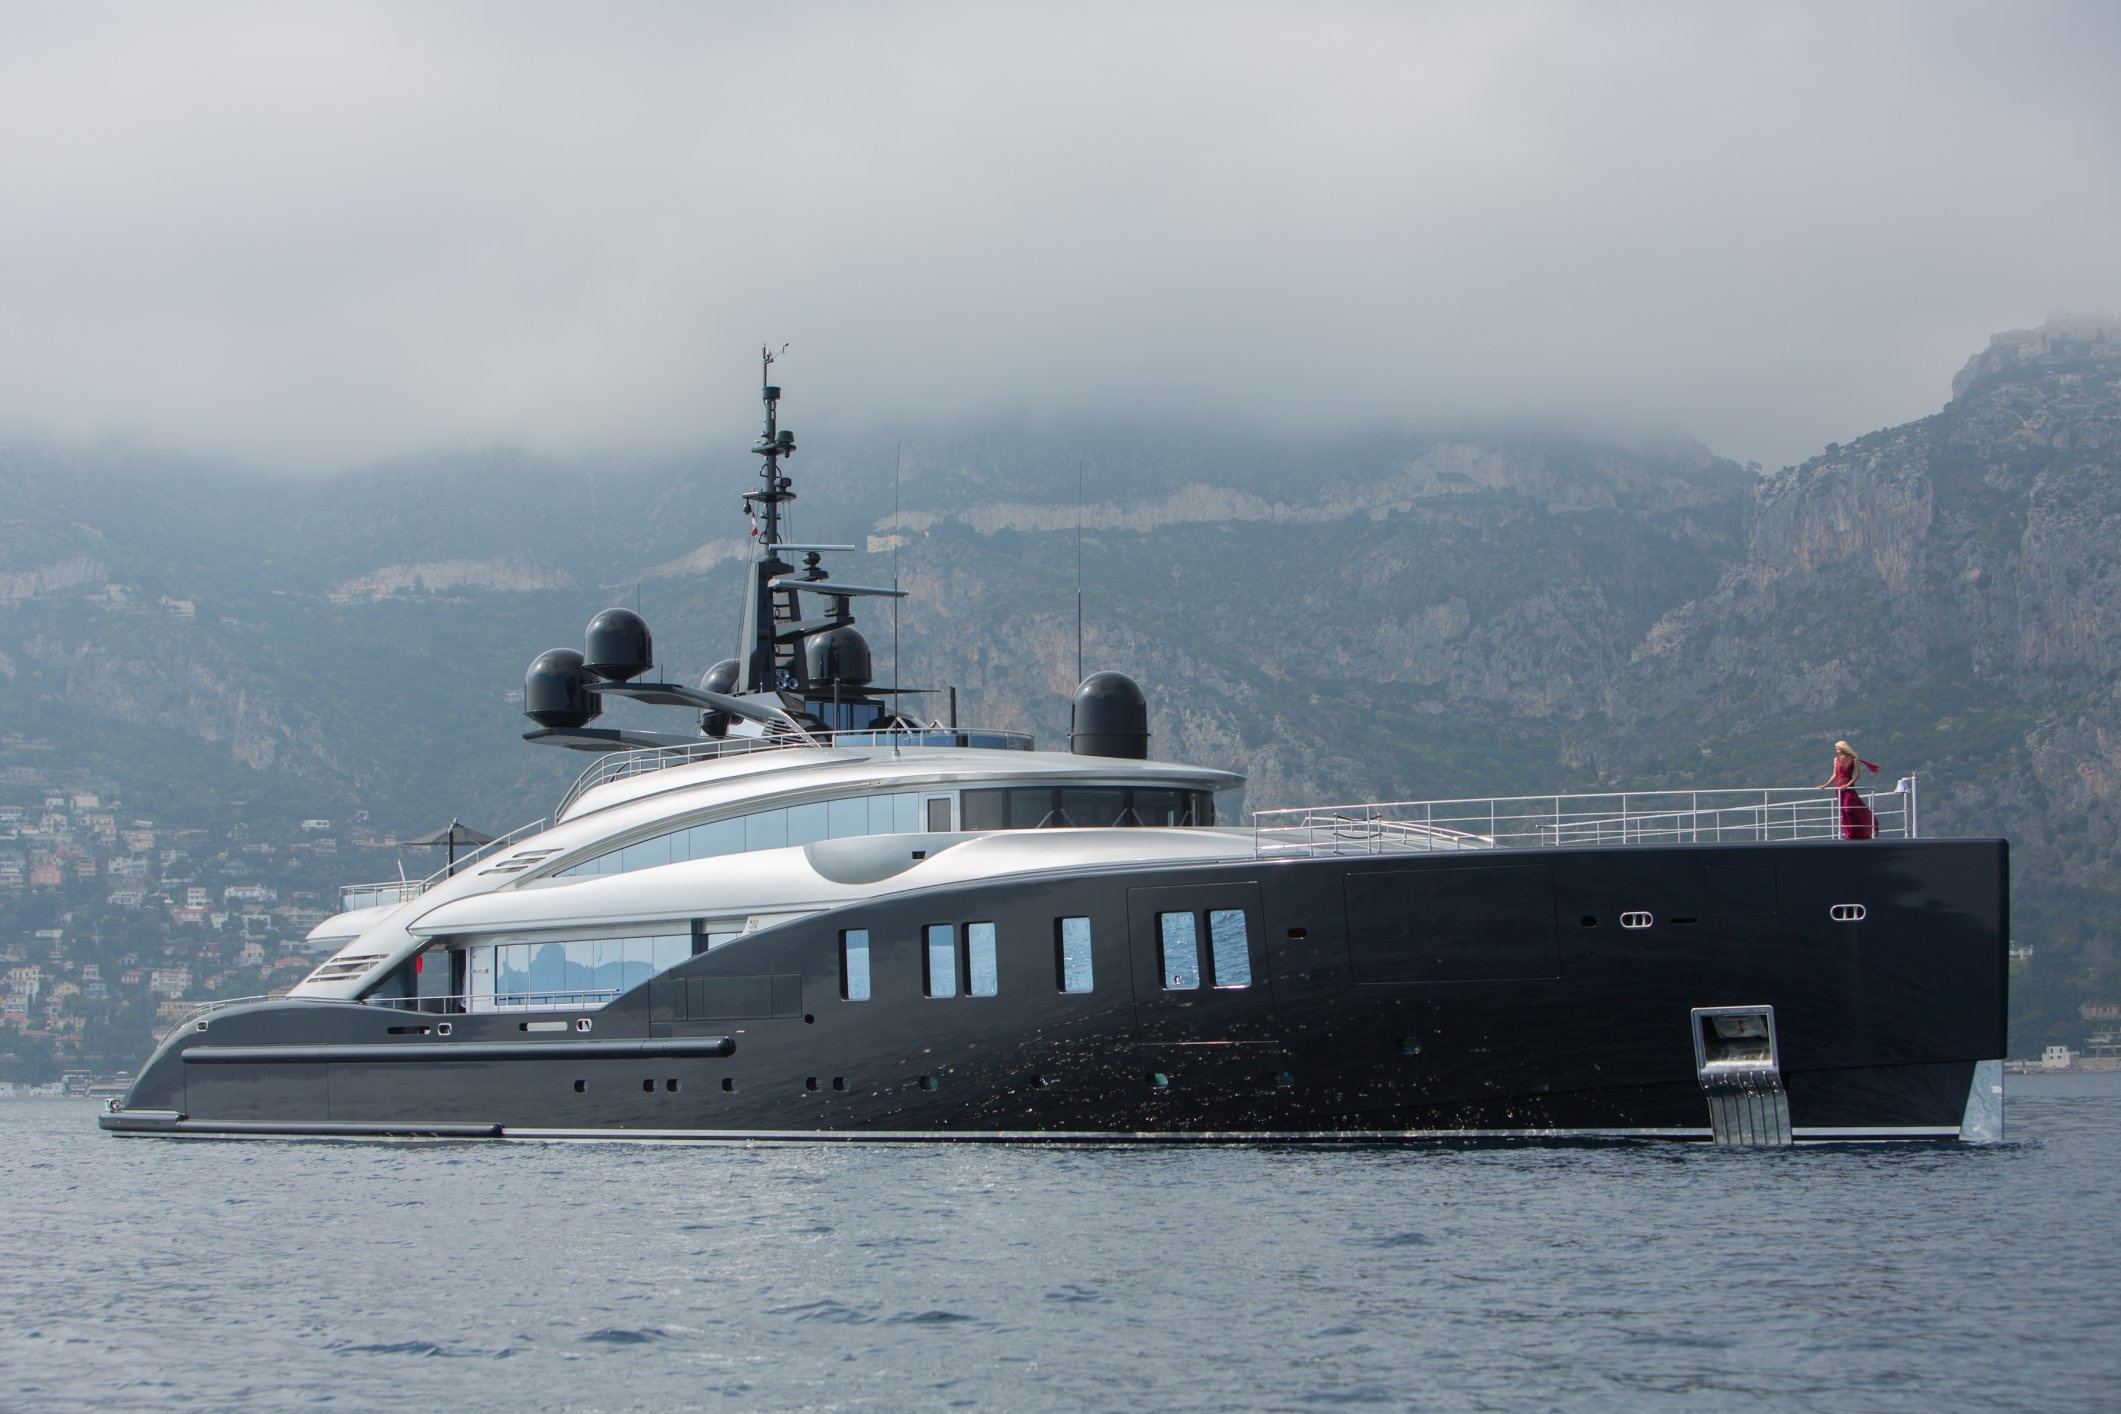 The Largest Superyachts Of Palm Beach 2016 | superyachts.com